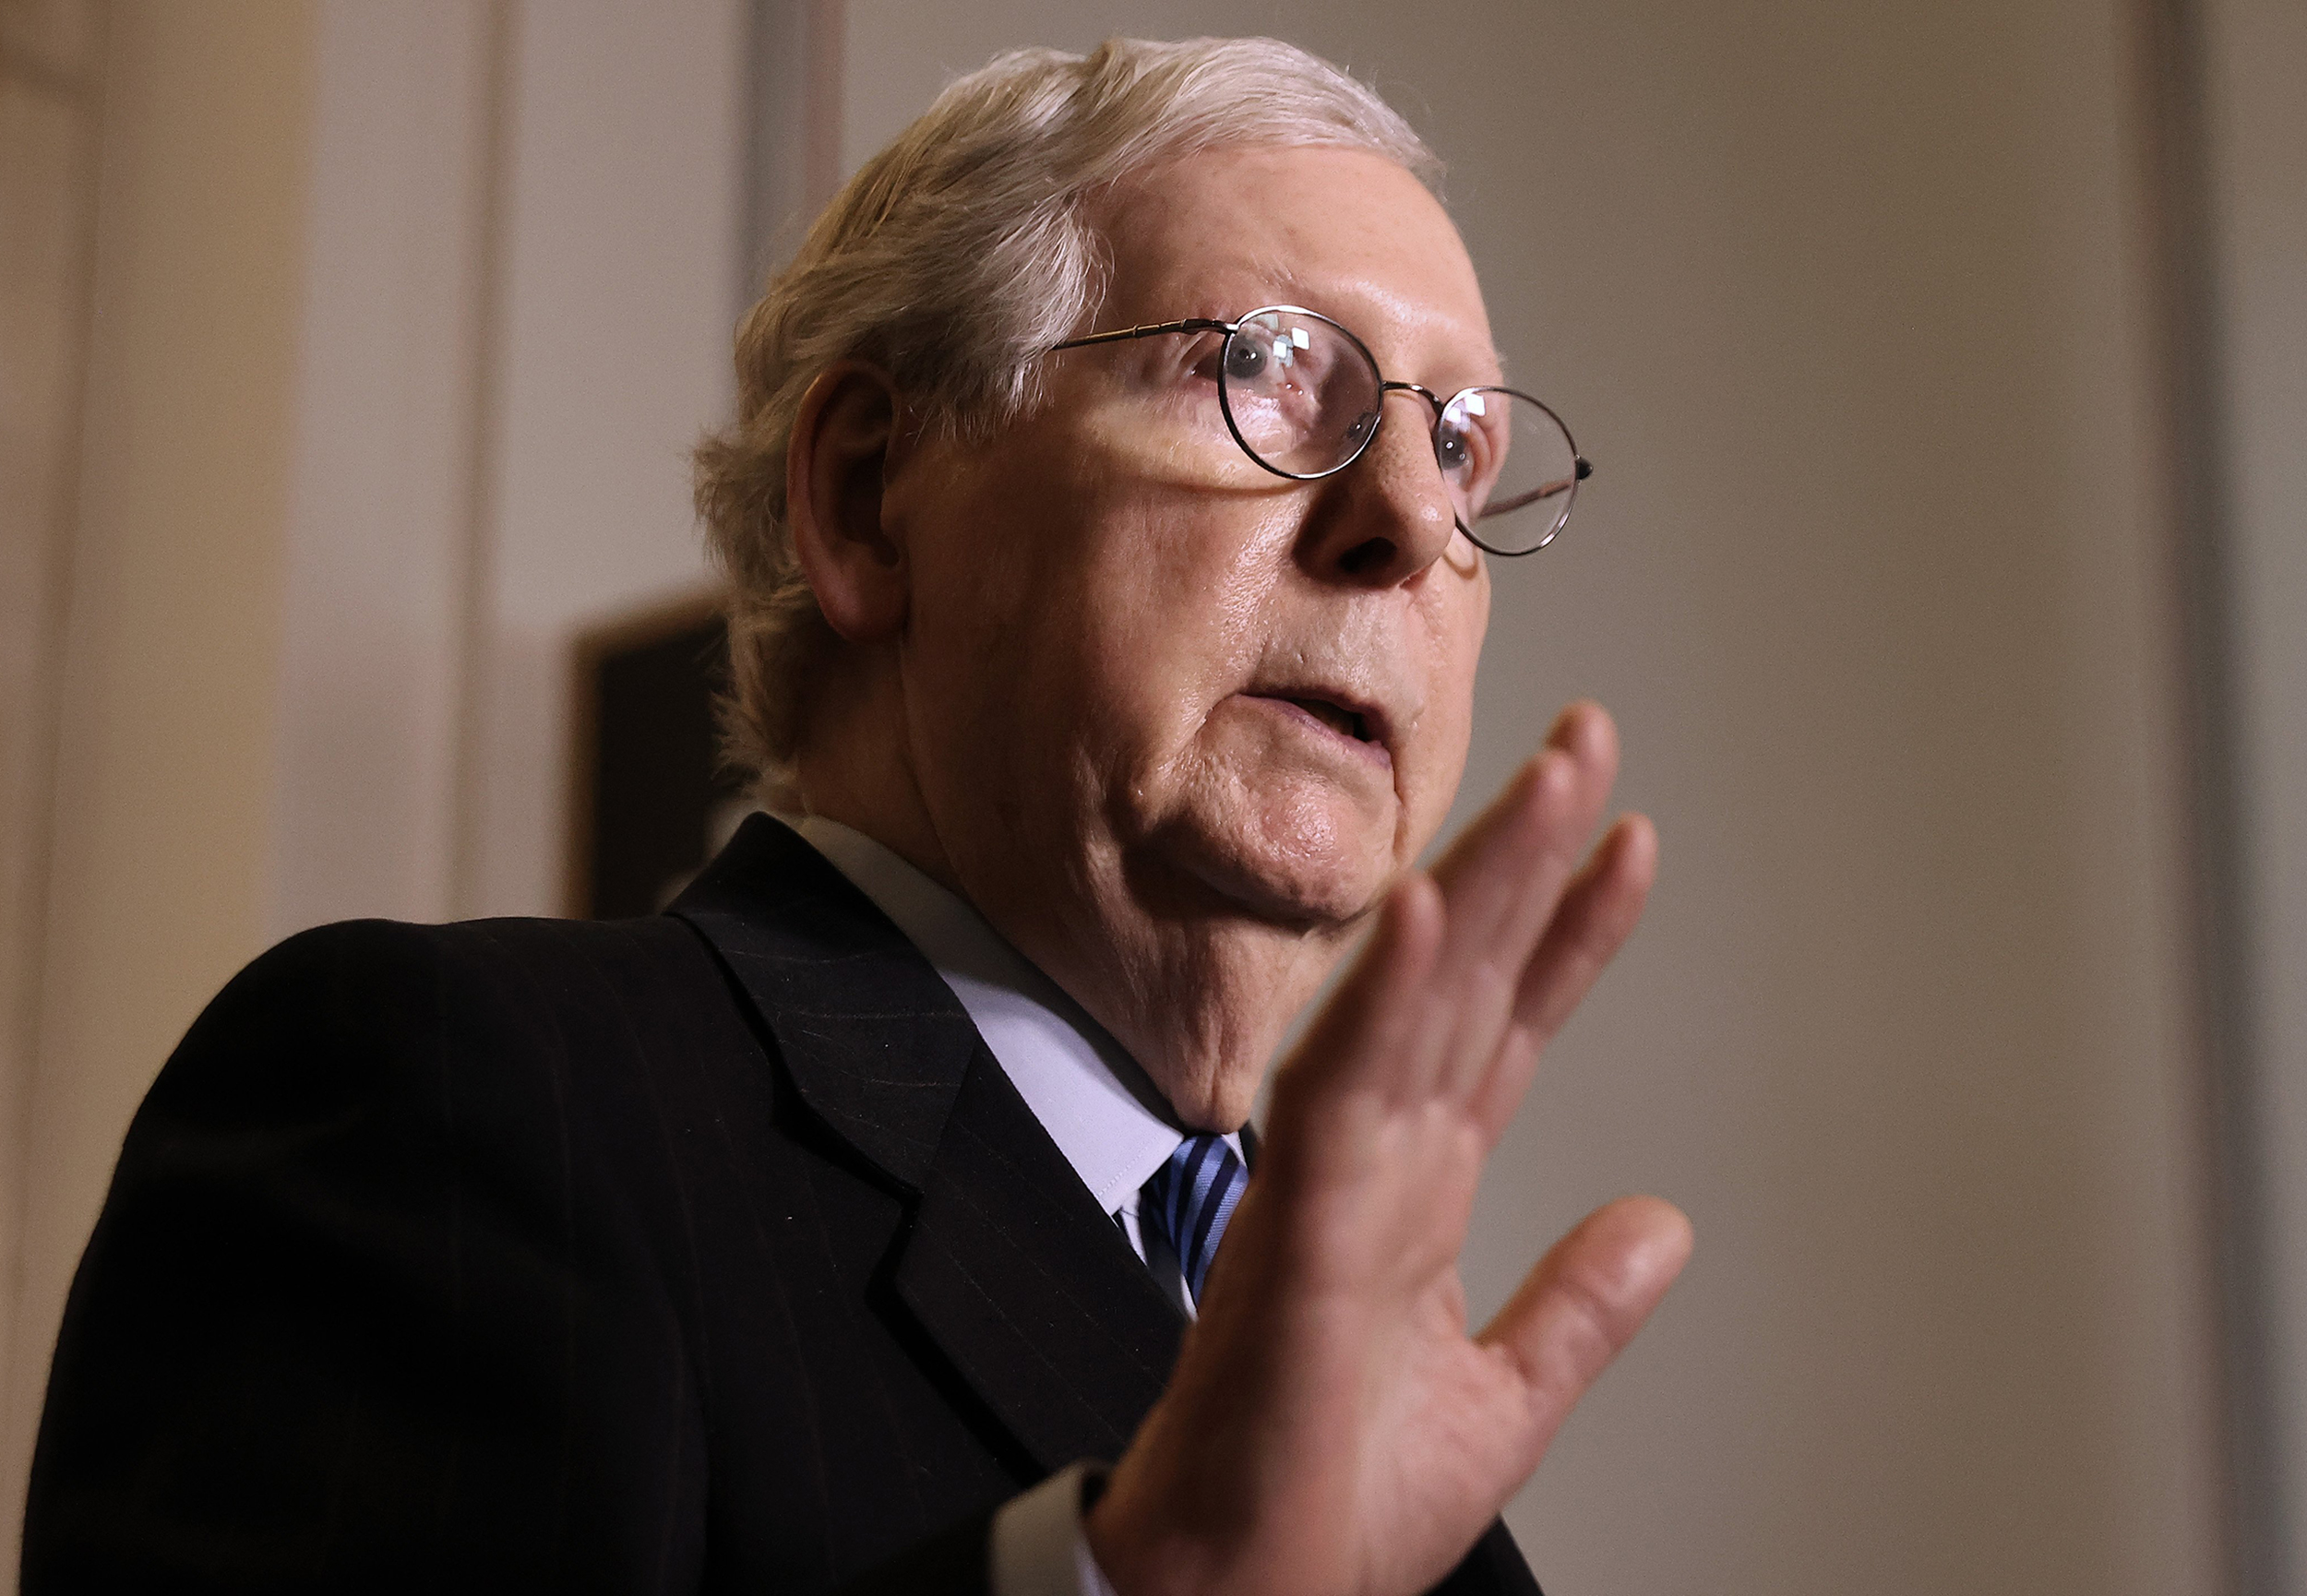 McConnell-warns-corporate-America-to-'stay-out-of-politics'-—-but-says-donations-are-OK